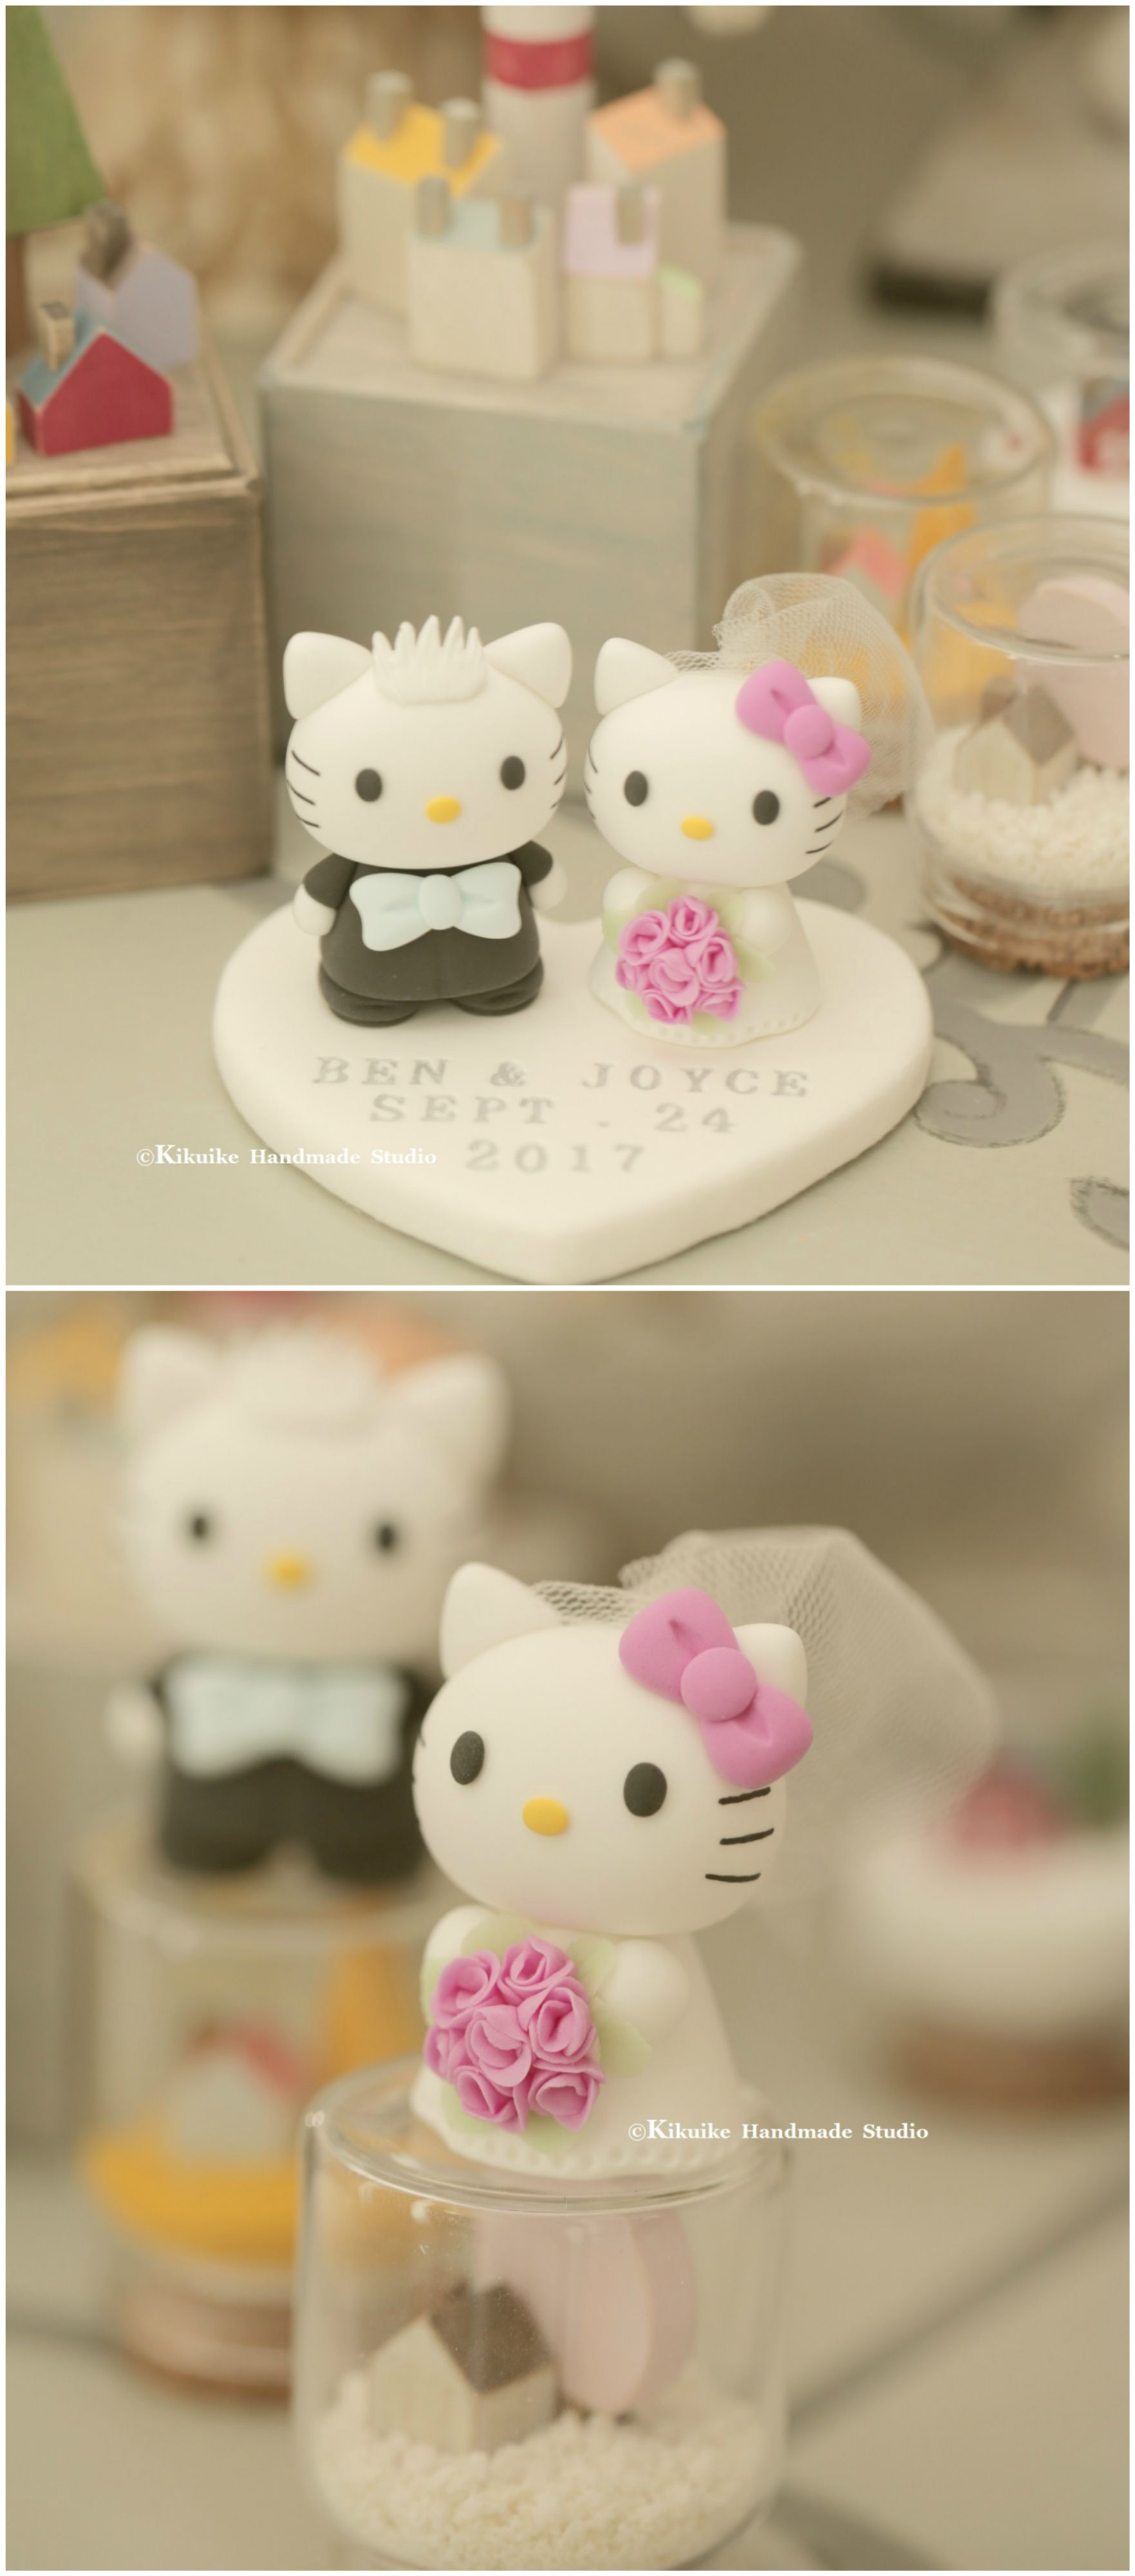 Hello Kitty Daniel Bride And Groom Wedding Cake Topper Love Cats Custom